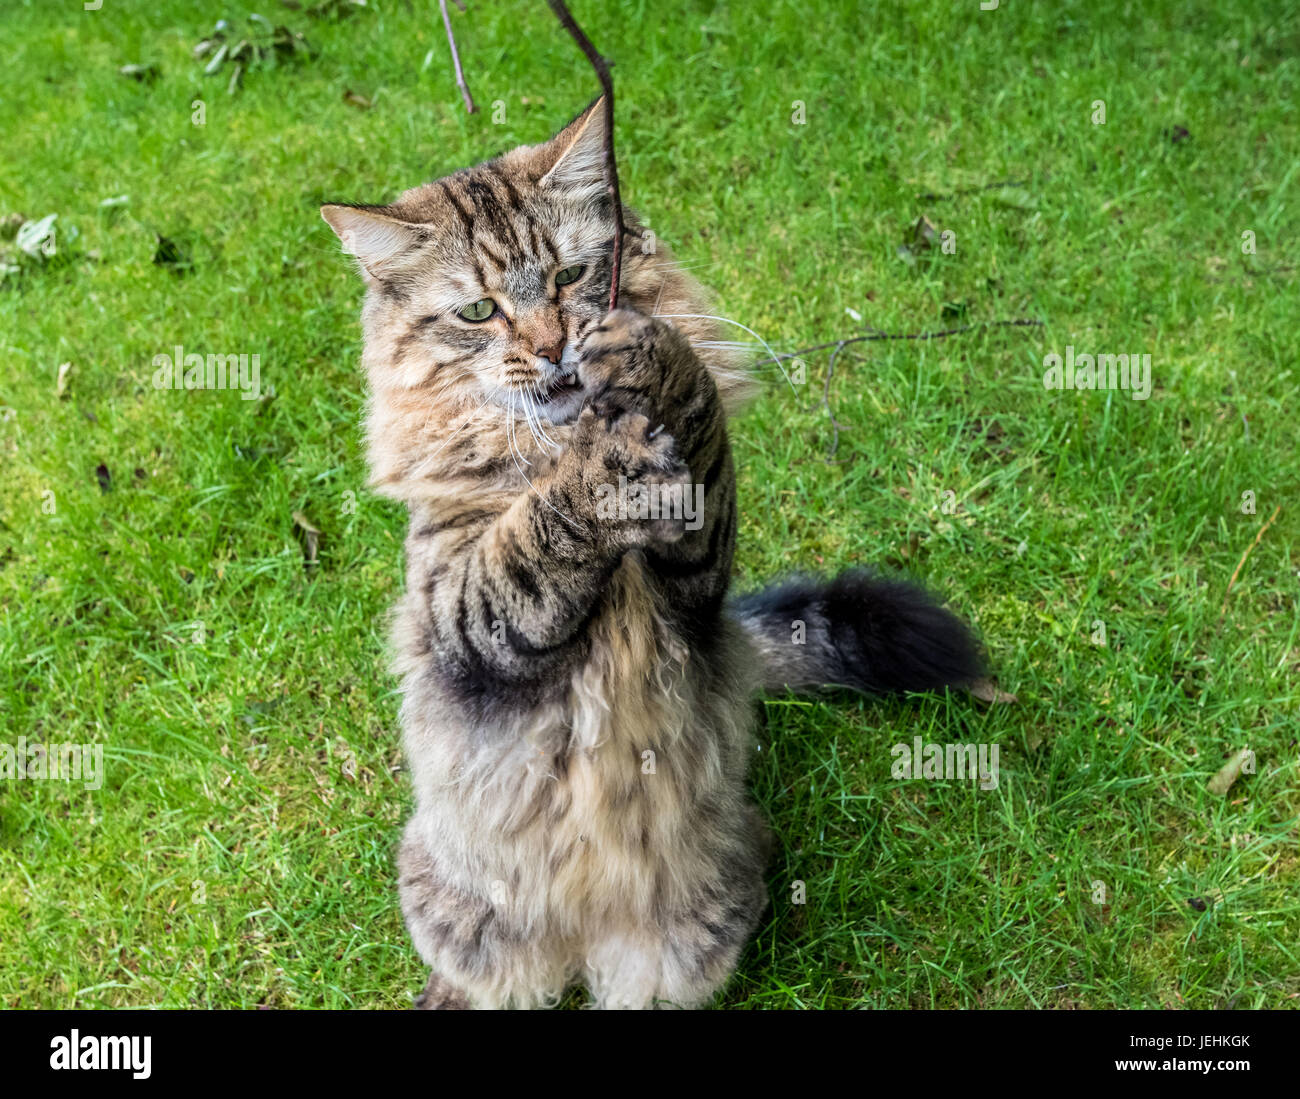 Tabby Cat On A Grass Lawn Standing Up On Two Legs Holding A Tree Branch In Their Paws - Stock Image